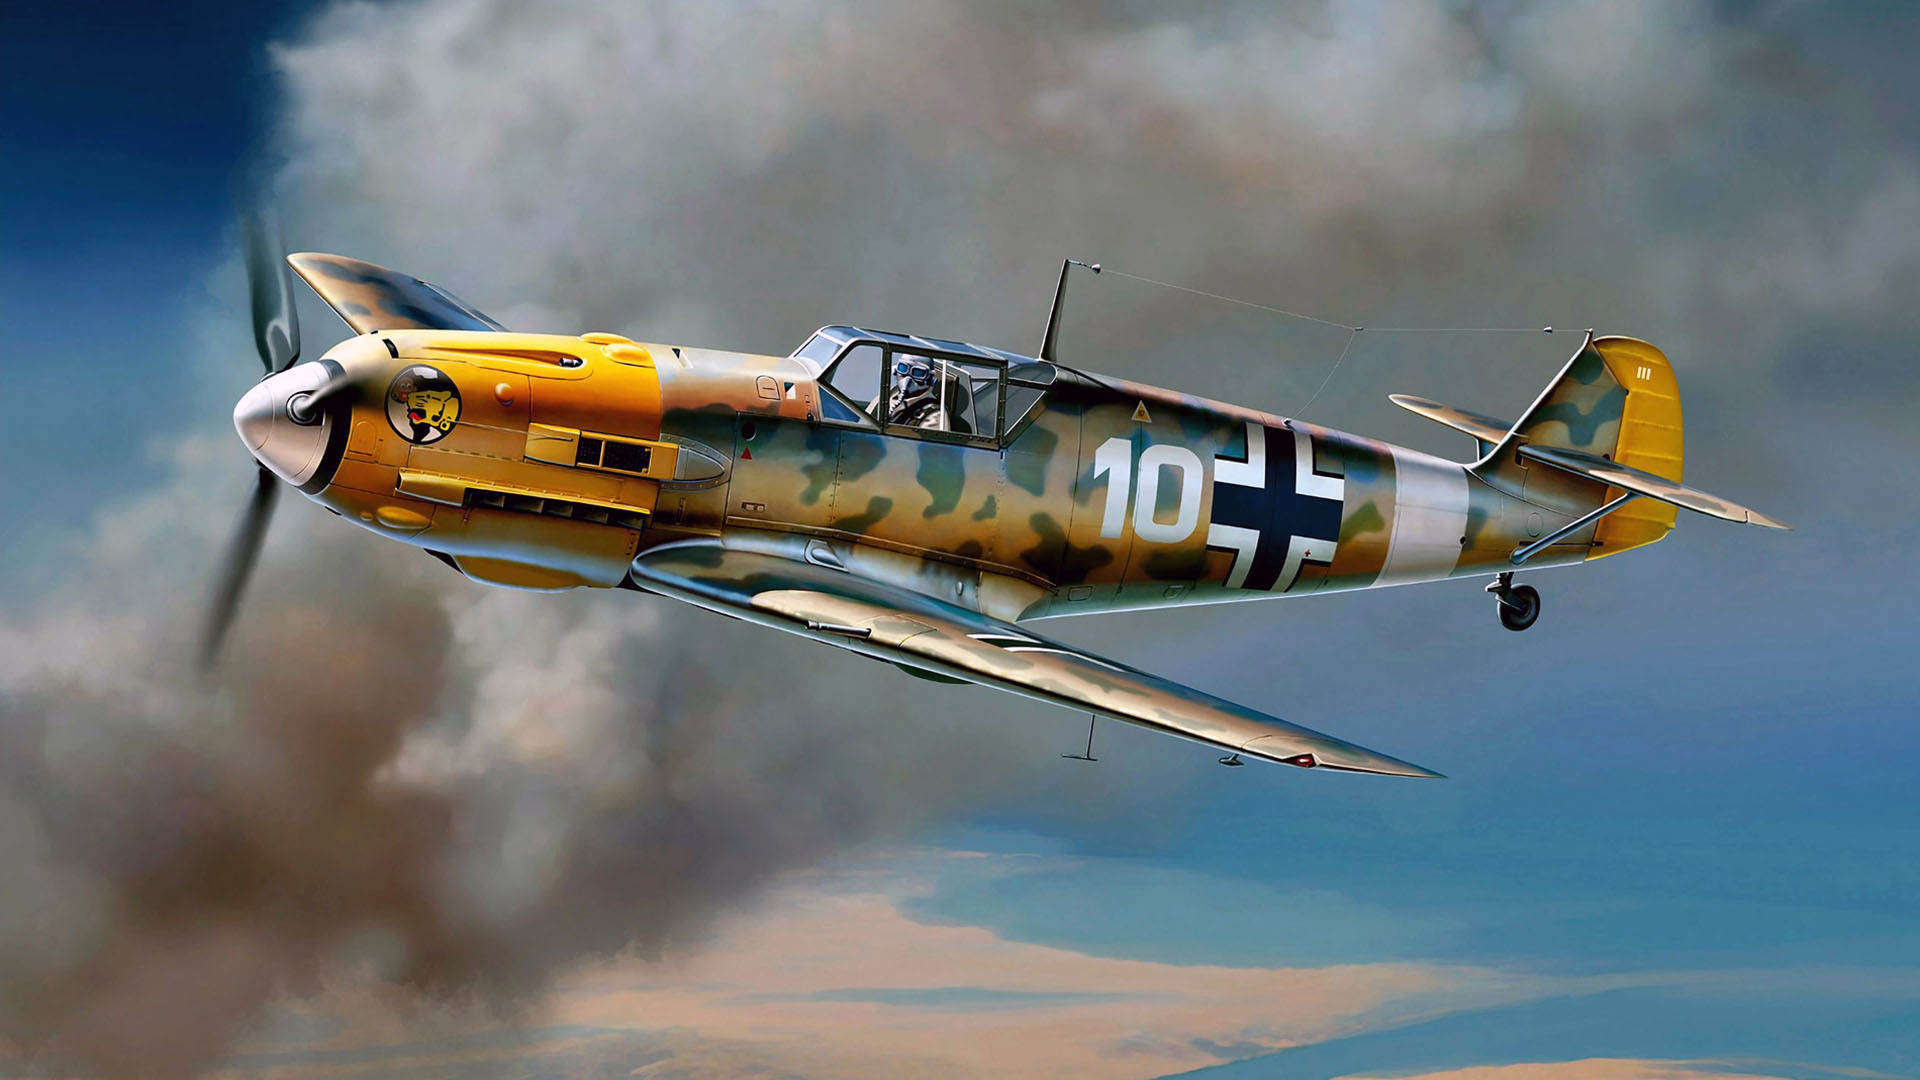 3634 best Flight images on Pinterest   Military aircraft, Aviation art and  Planes